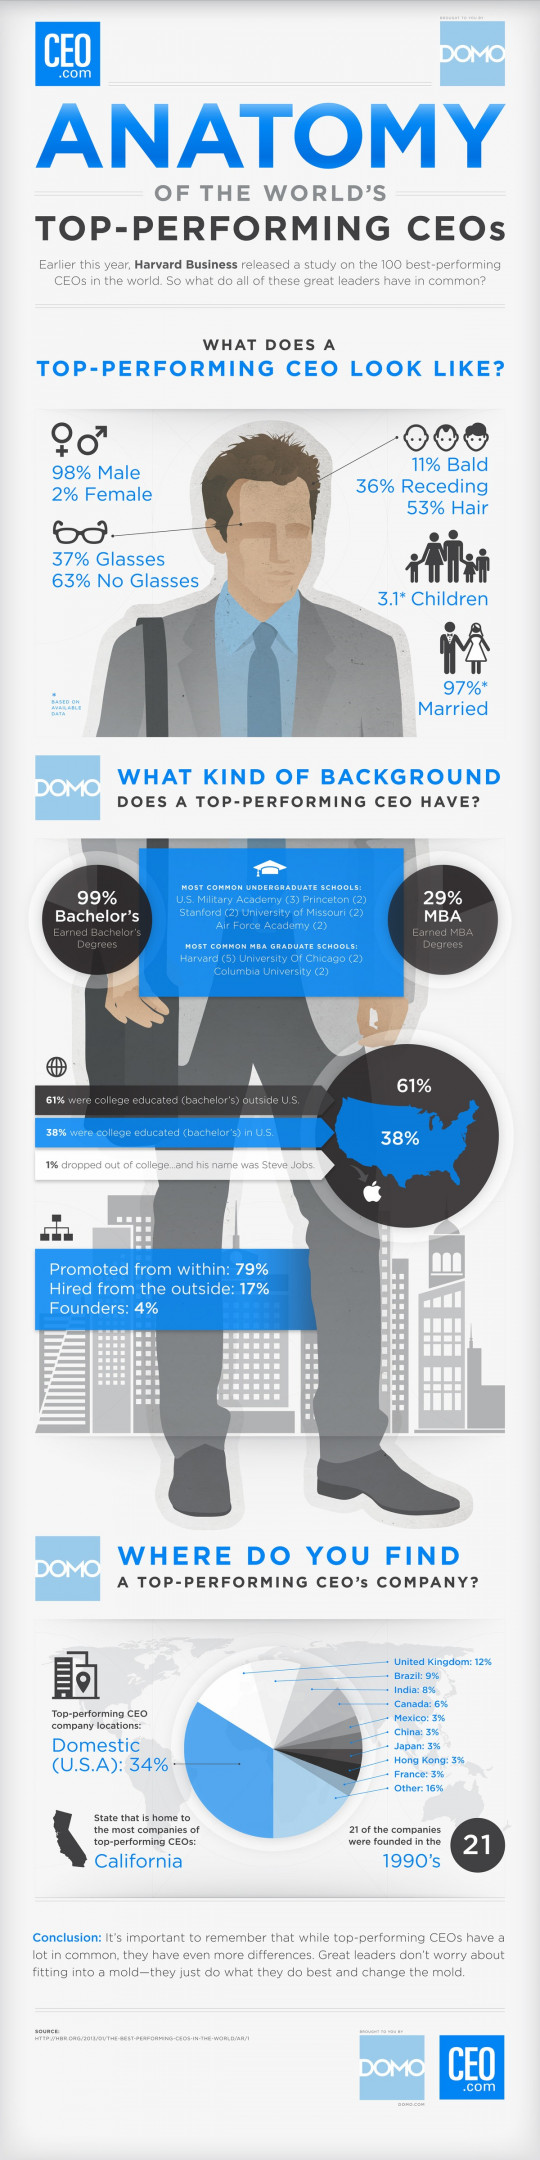 Top-Performing CEOs [INFOGRAPHIC]